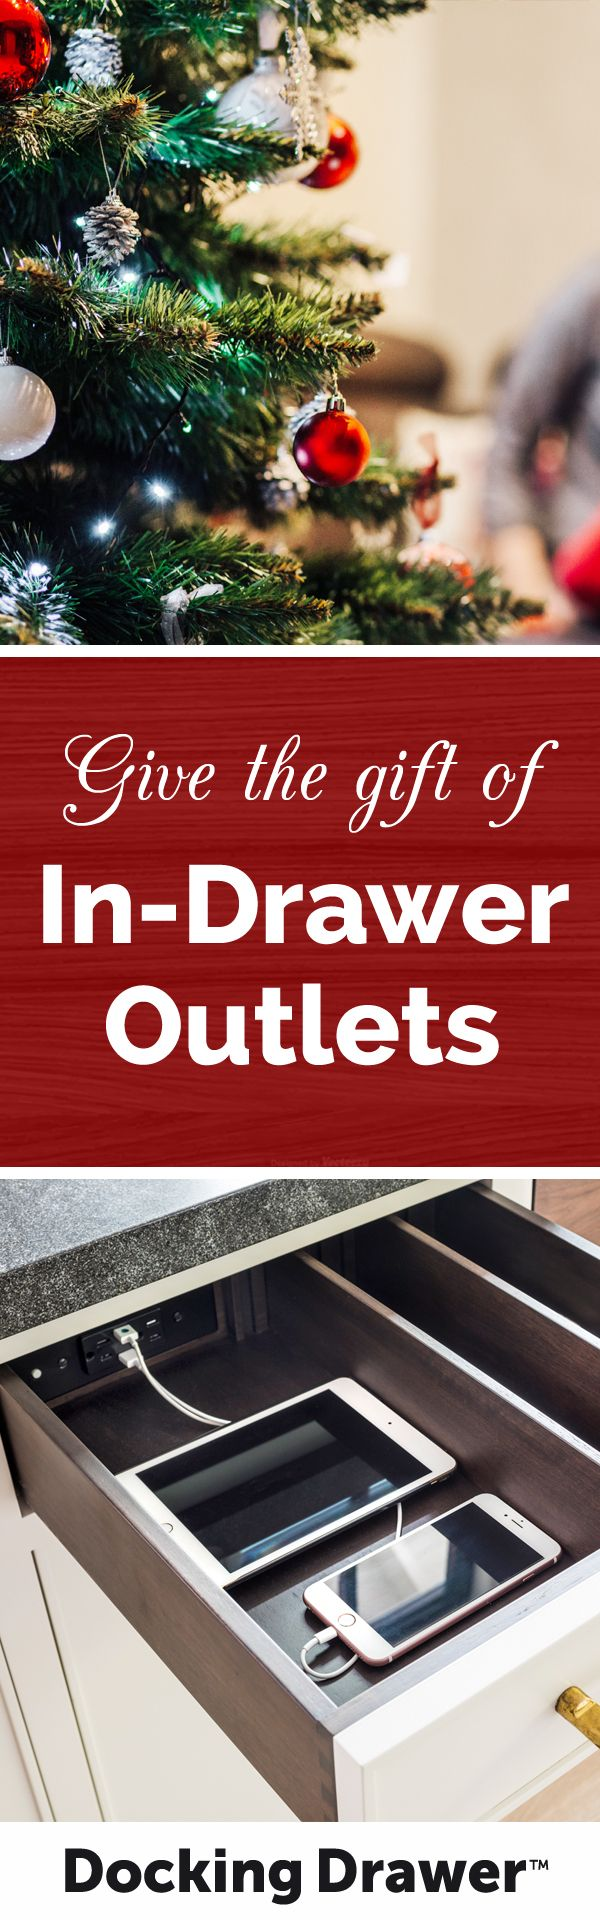 Give the gift of home organization and efficiency! Docking Drawer's safe, affordable in-drawer outlets can be easily installed by anyone, making them a perfect gift for the home. #InDrawerOutlets #DockingDrawer #Outlets